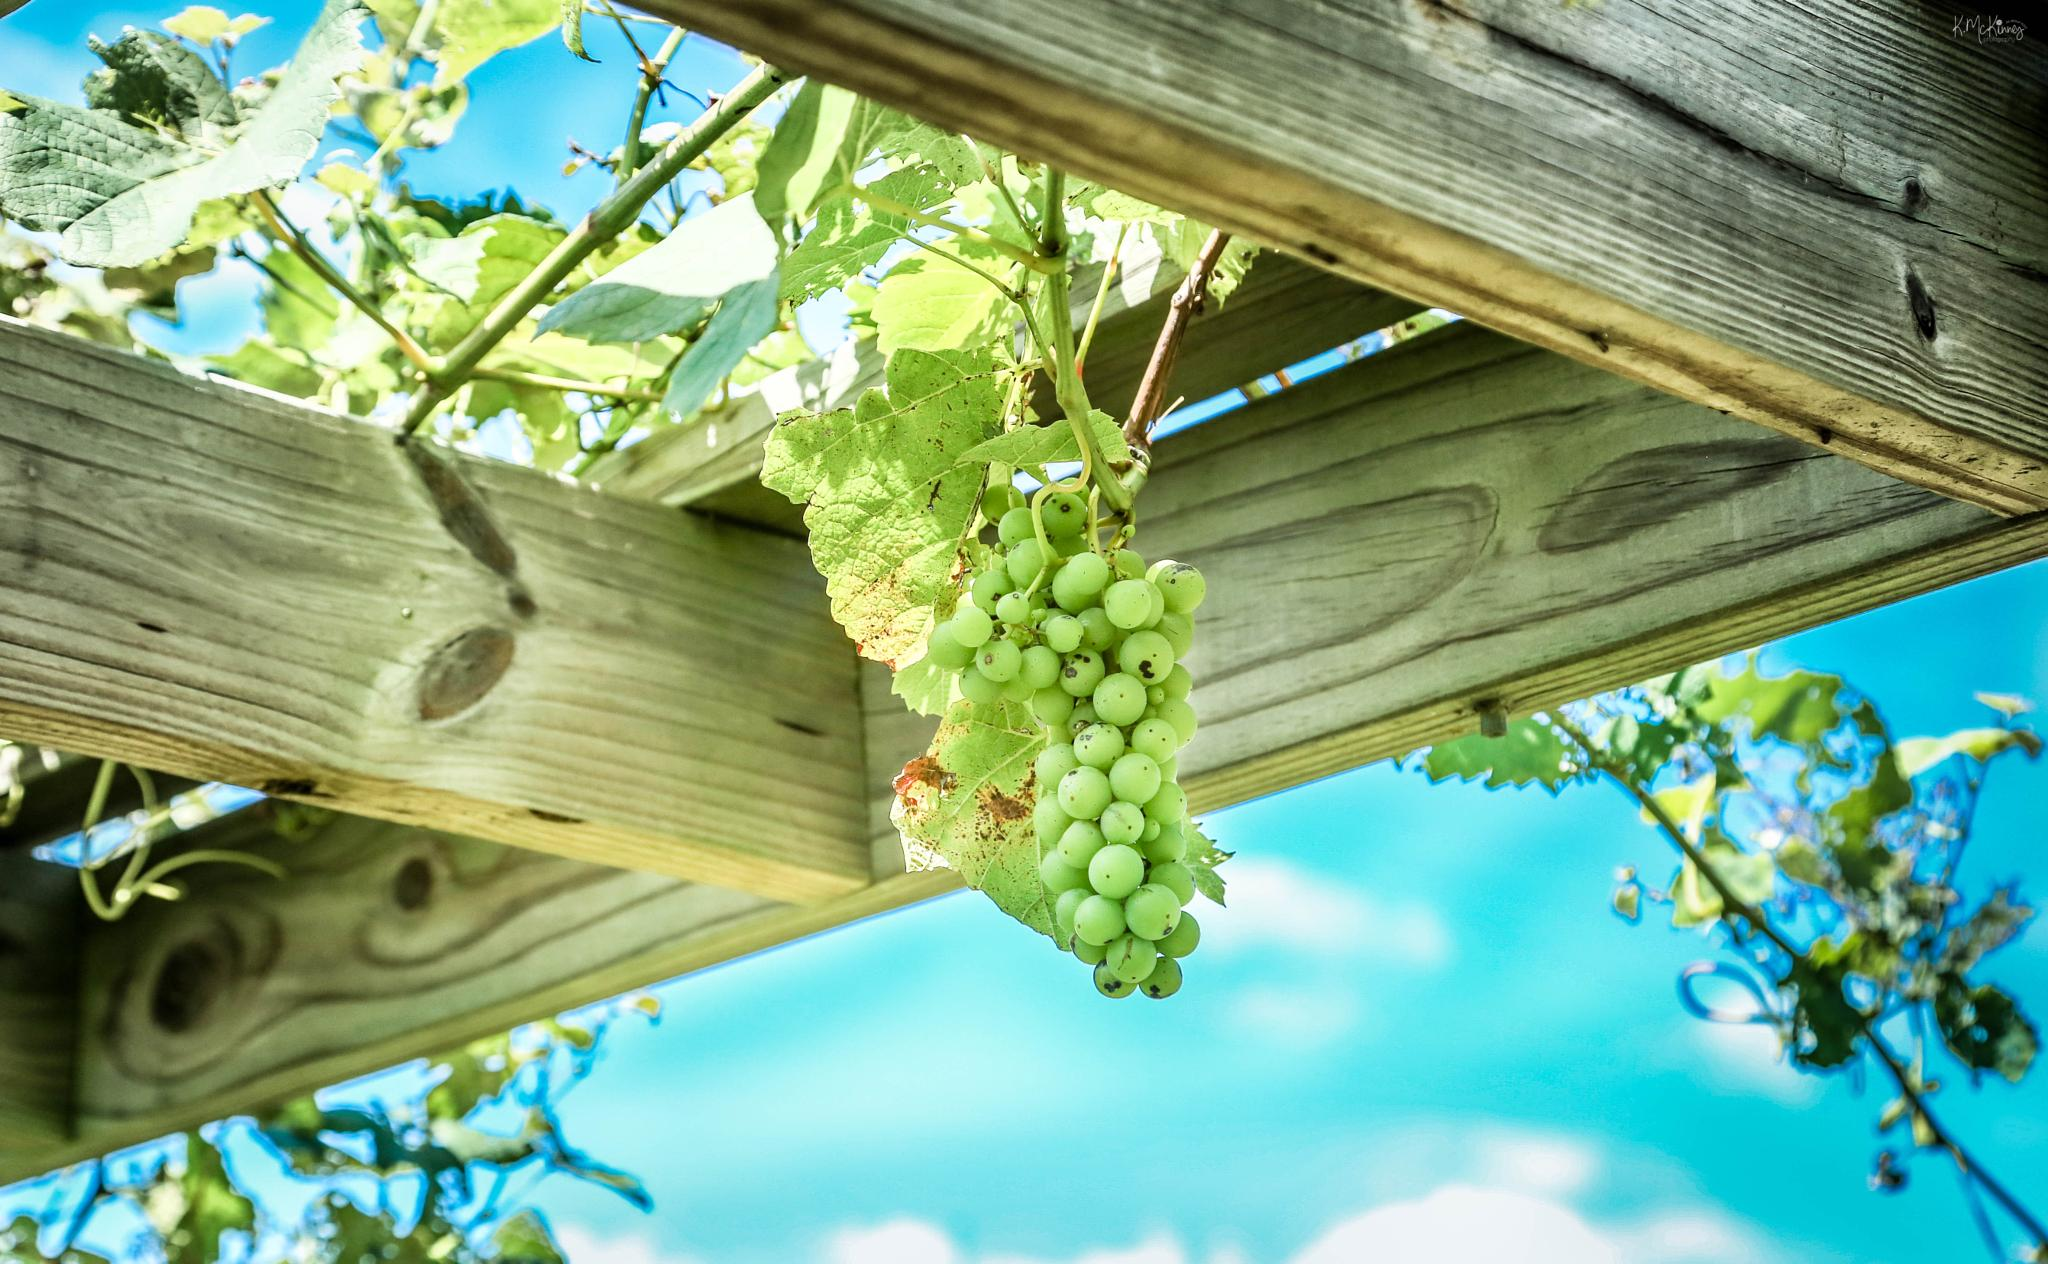 Grapes on the Vine by Karlasue